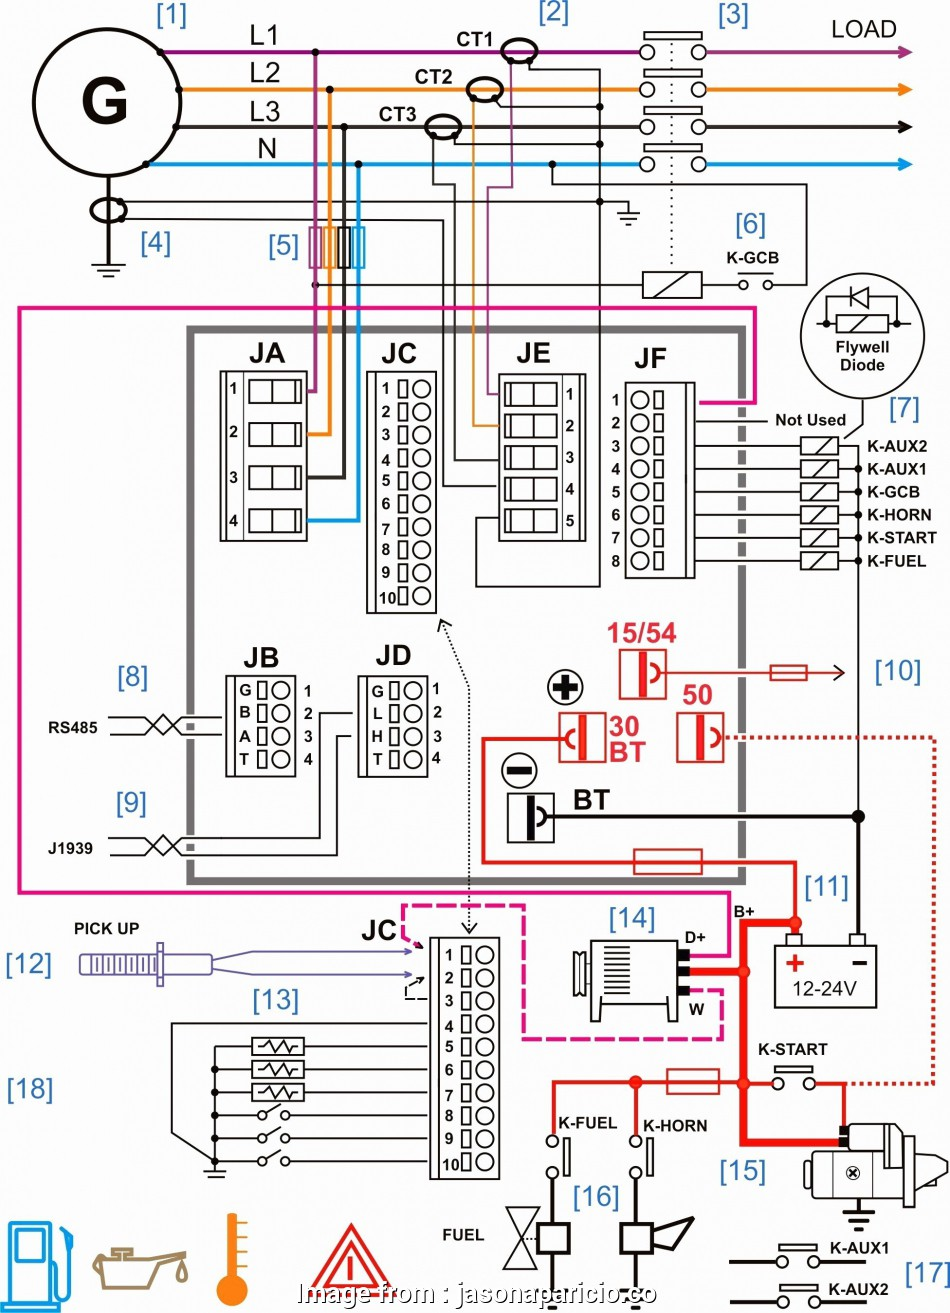 light switch wiring canada Simple Wiring Diagram, Light Switch Save House Wiring Diagrams Canada Information Wiring Diagram • 12 Popular Light Switch Wiring Canada Photos